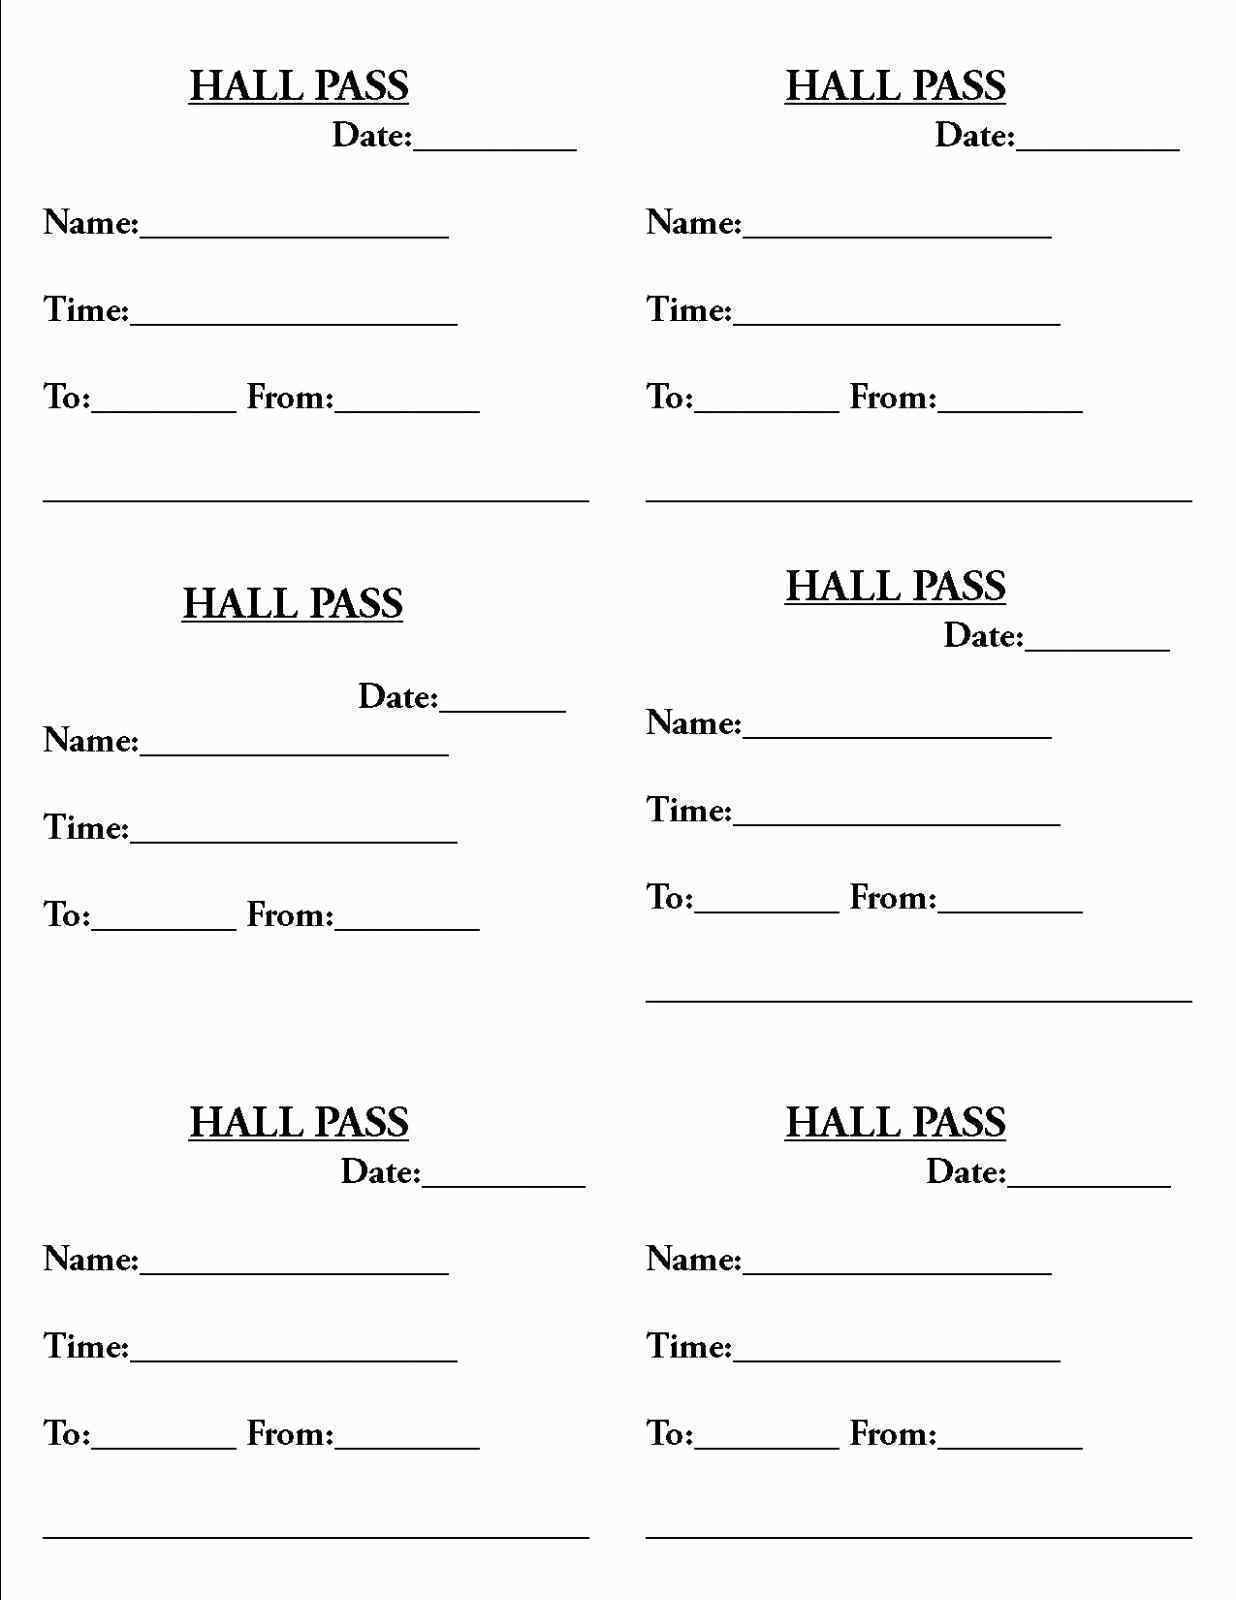 Hall Pass Template Unique New Hall Pass Template - Resume Templates 2018 - Free Printable Hall Pass Template